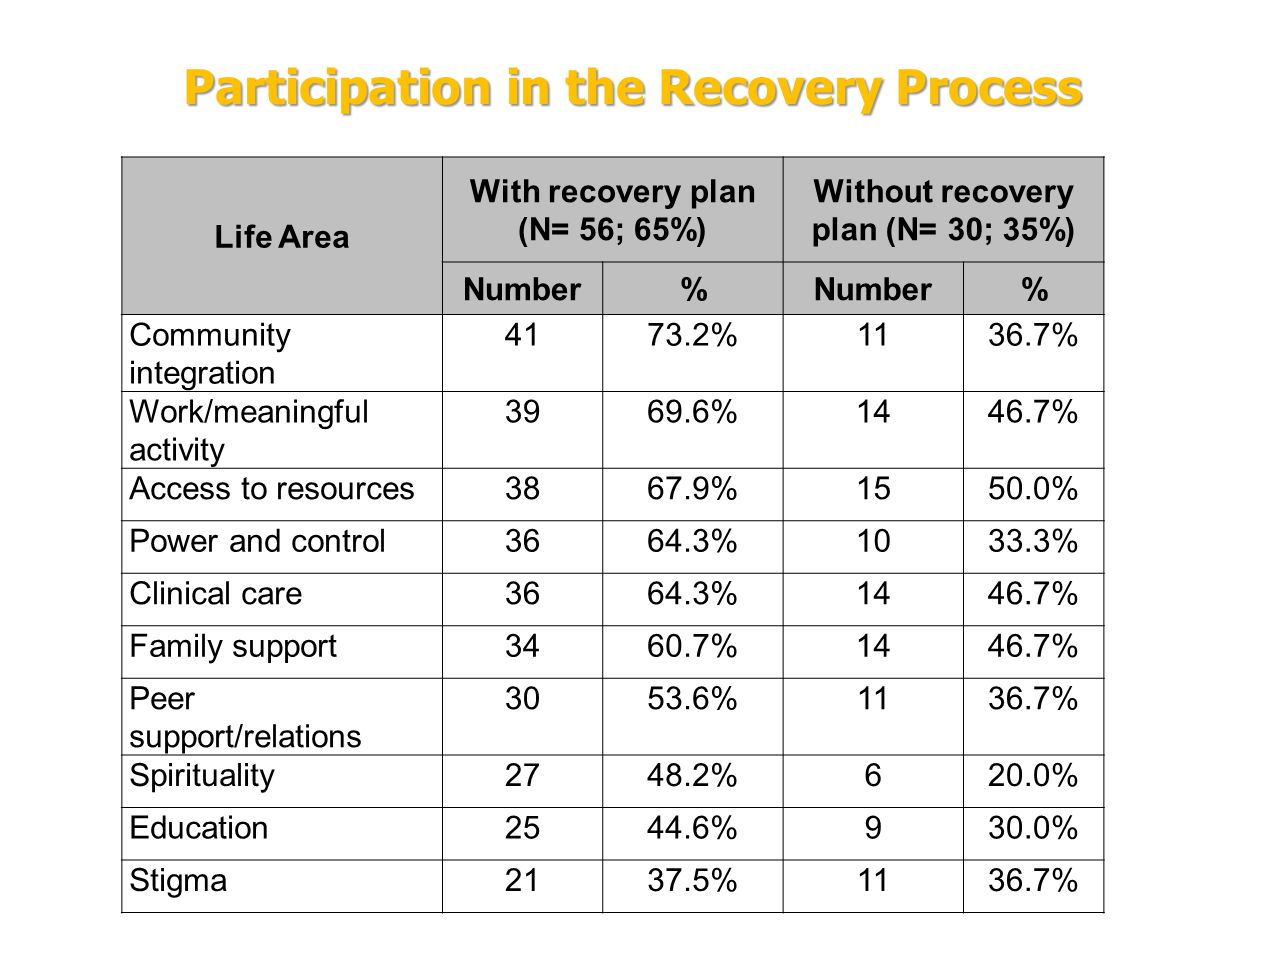 Participation in the Recovery Process Life Area With recovery plan (N= 56; 65%) Without recovery plan (N= 30; 35%) Number% % Community integration 4173.2%1136.7% Work/meaningful activity 3969.6%1446.7% Access to resources3867.9%1550.0% Power and control3664.3%1033.3% Clinical care3664.3%1446.7% Family support3460.7%1446.7% Peer support/relations 3053.6%1136.7% Spirituality2748.2%620.0% Education2544.6%930.0% Stigma2137.5%1136.7%